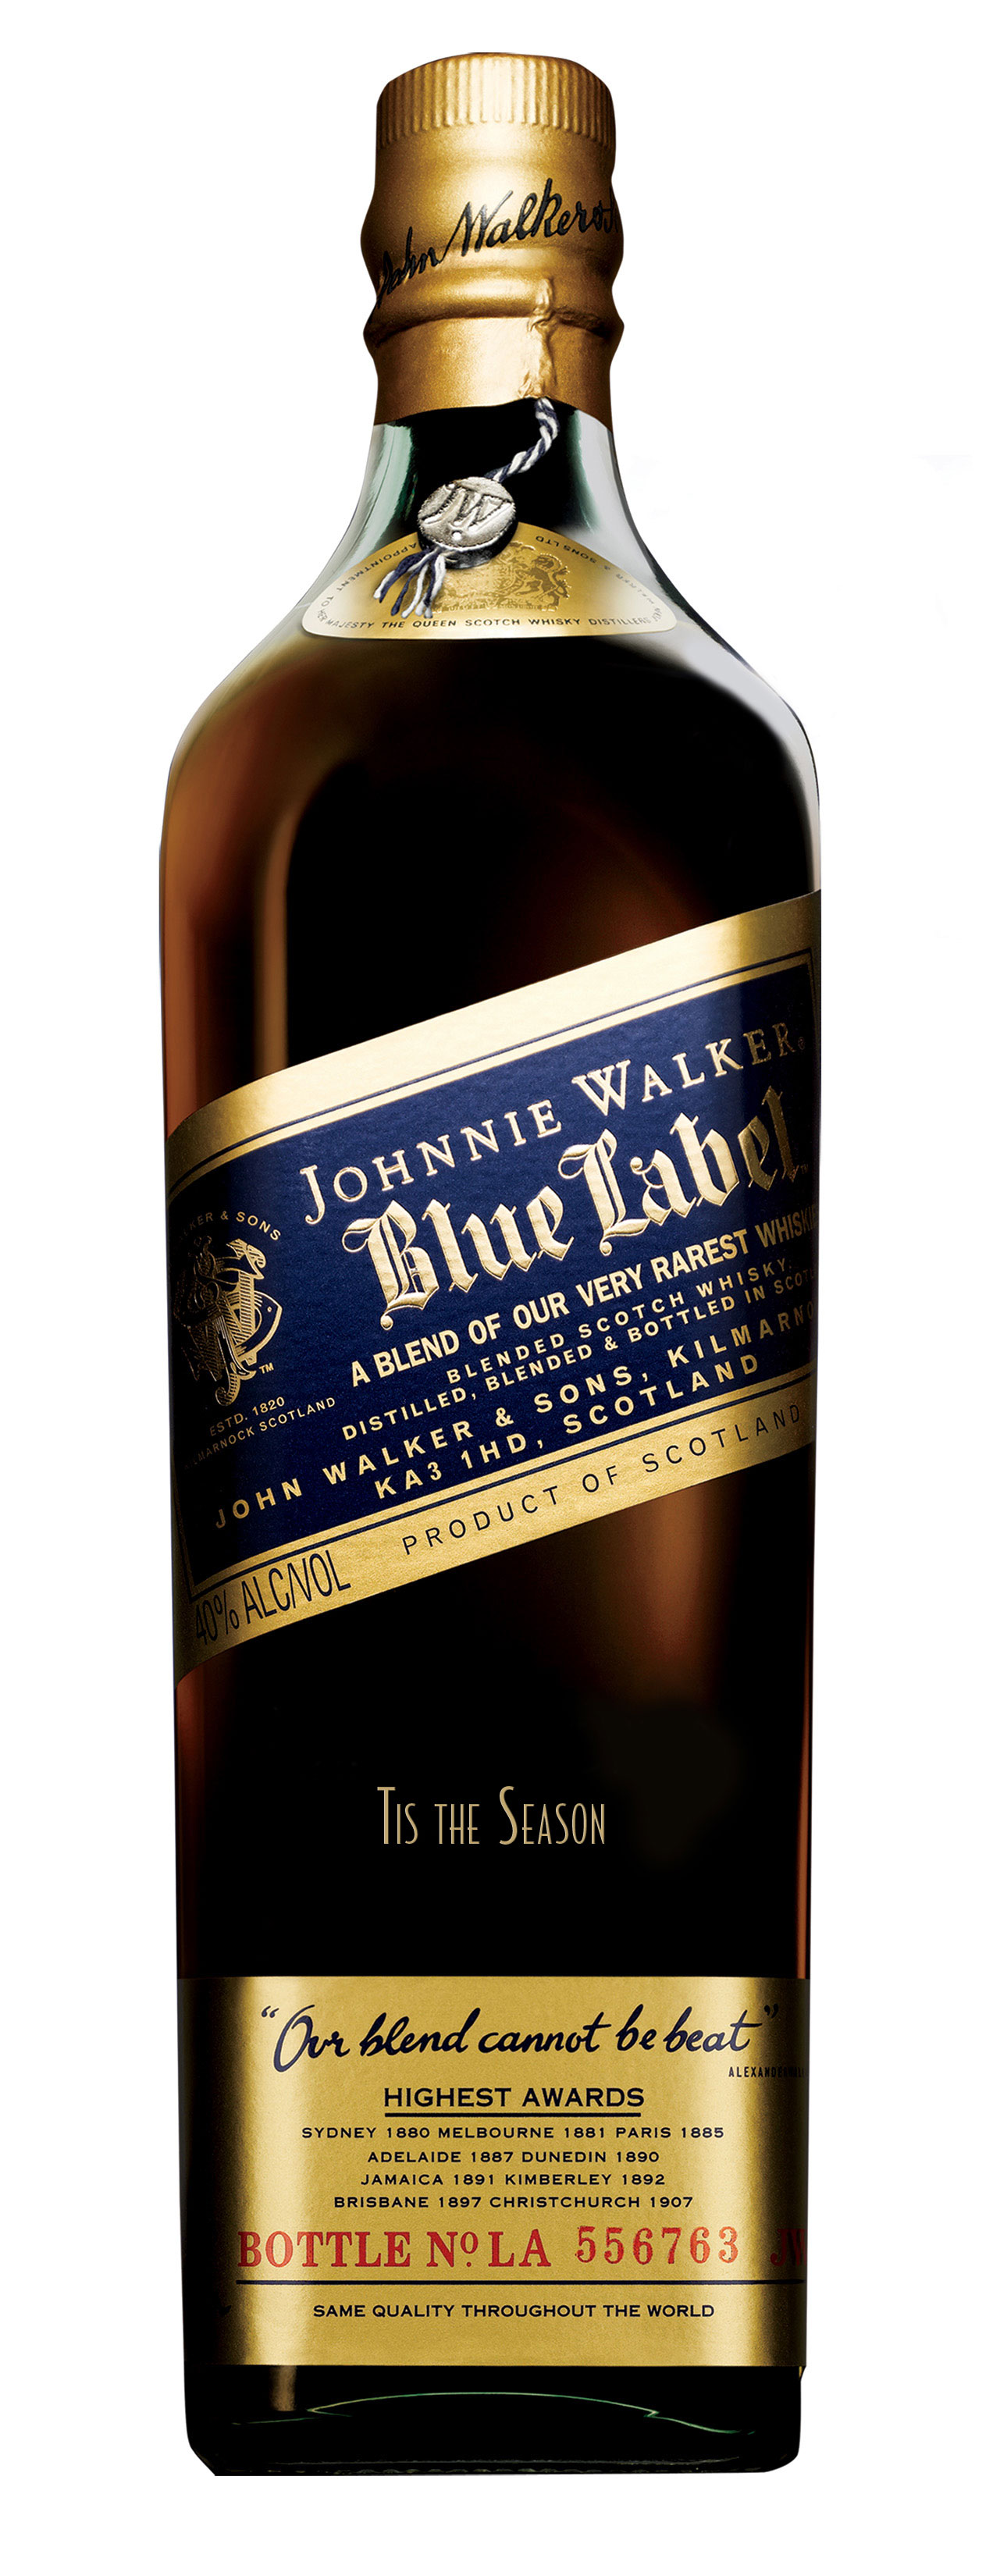 Johnnie-Walker-Blue-Label-Personalized-Bottle-1